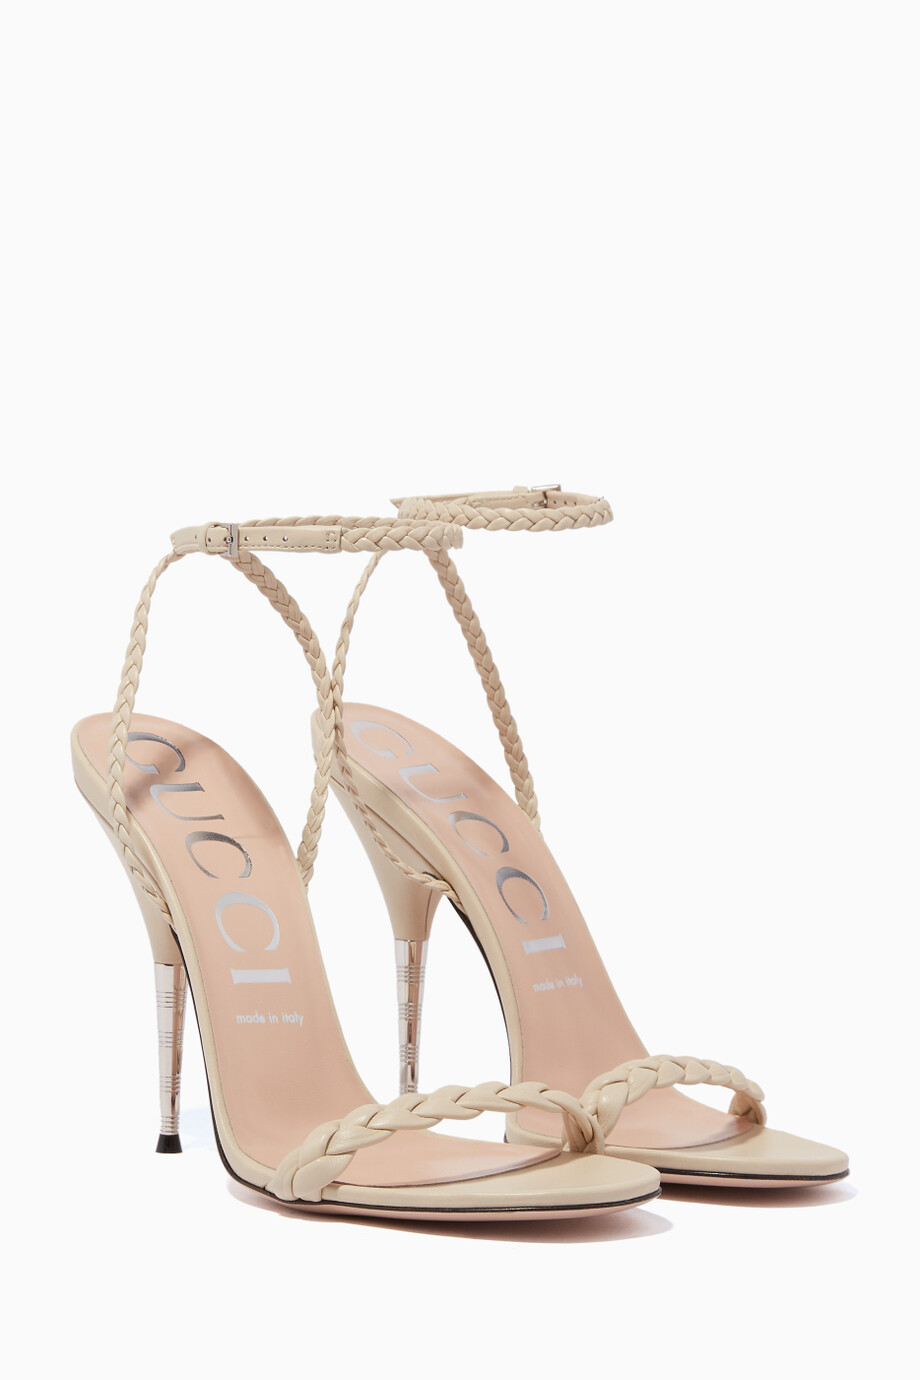 bac336014 Shop Gucci Neutral Aria Braided Leather Sandals for Women | Ounass